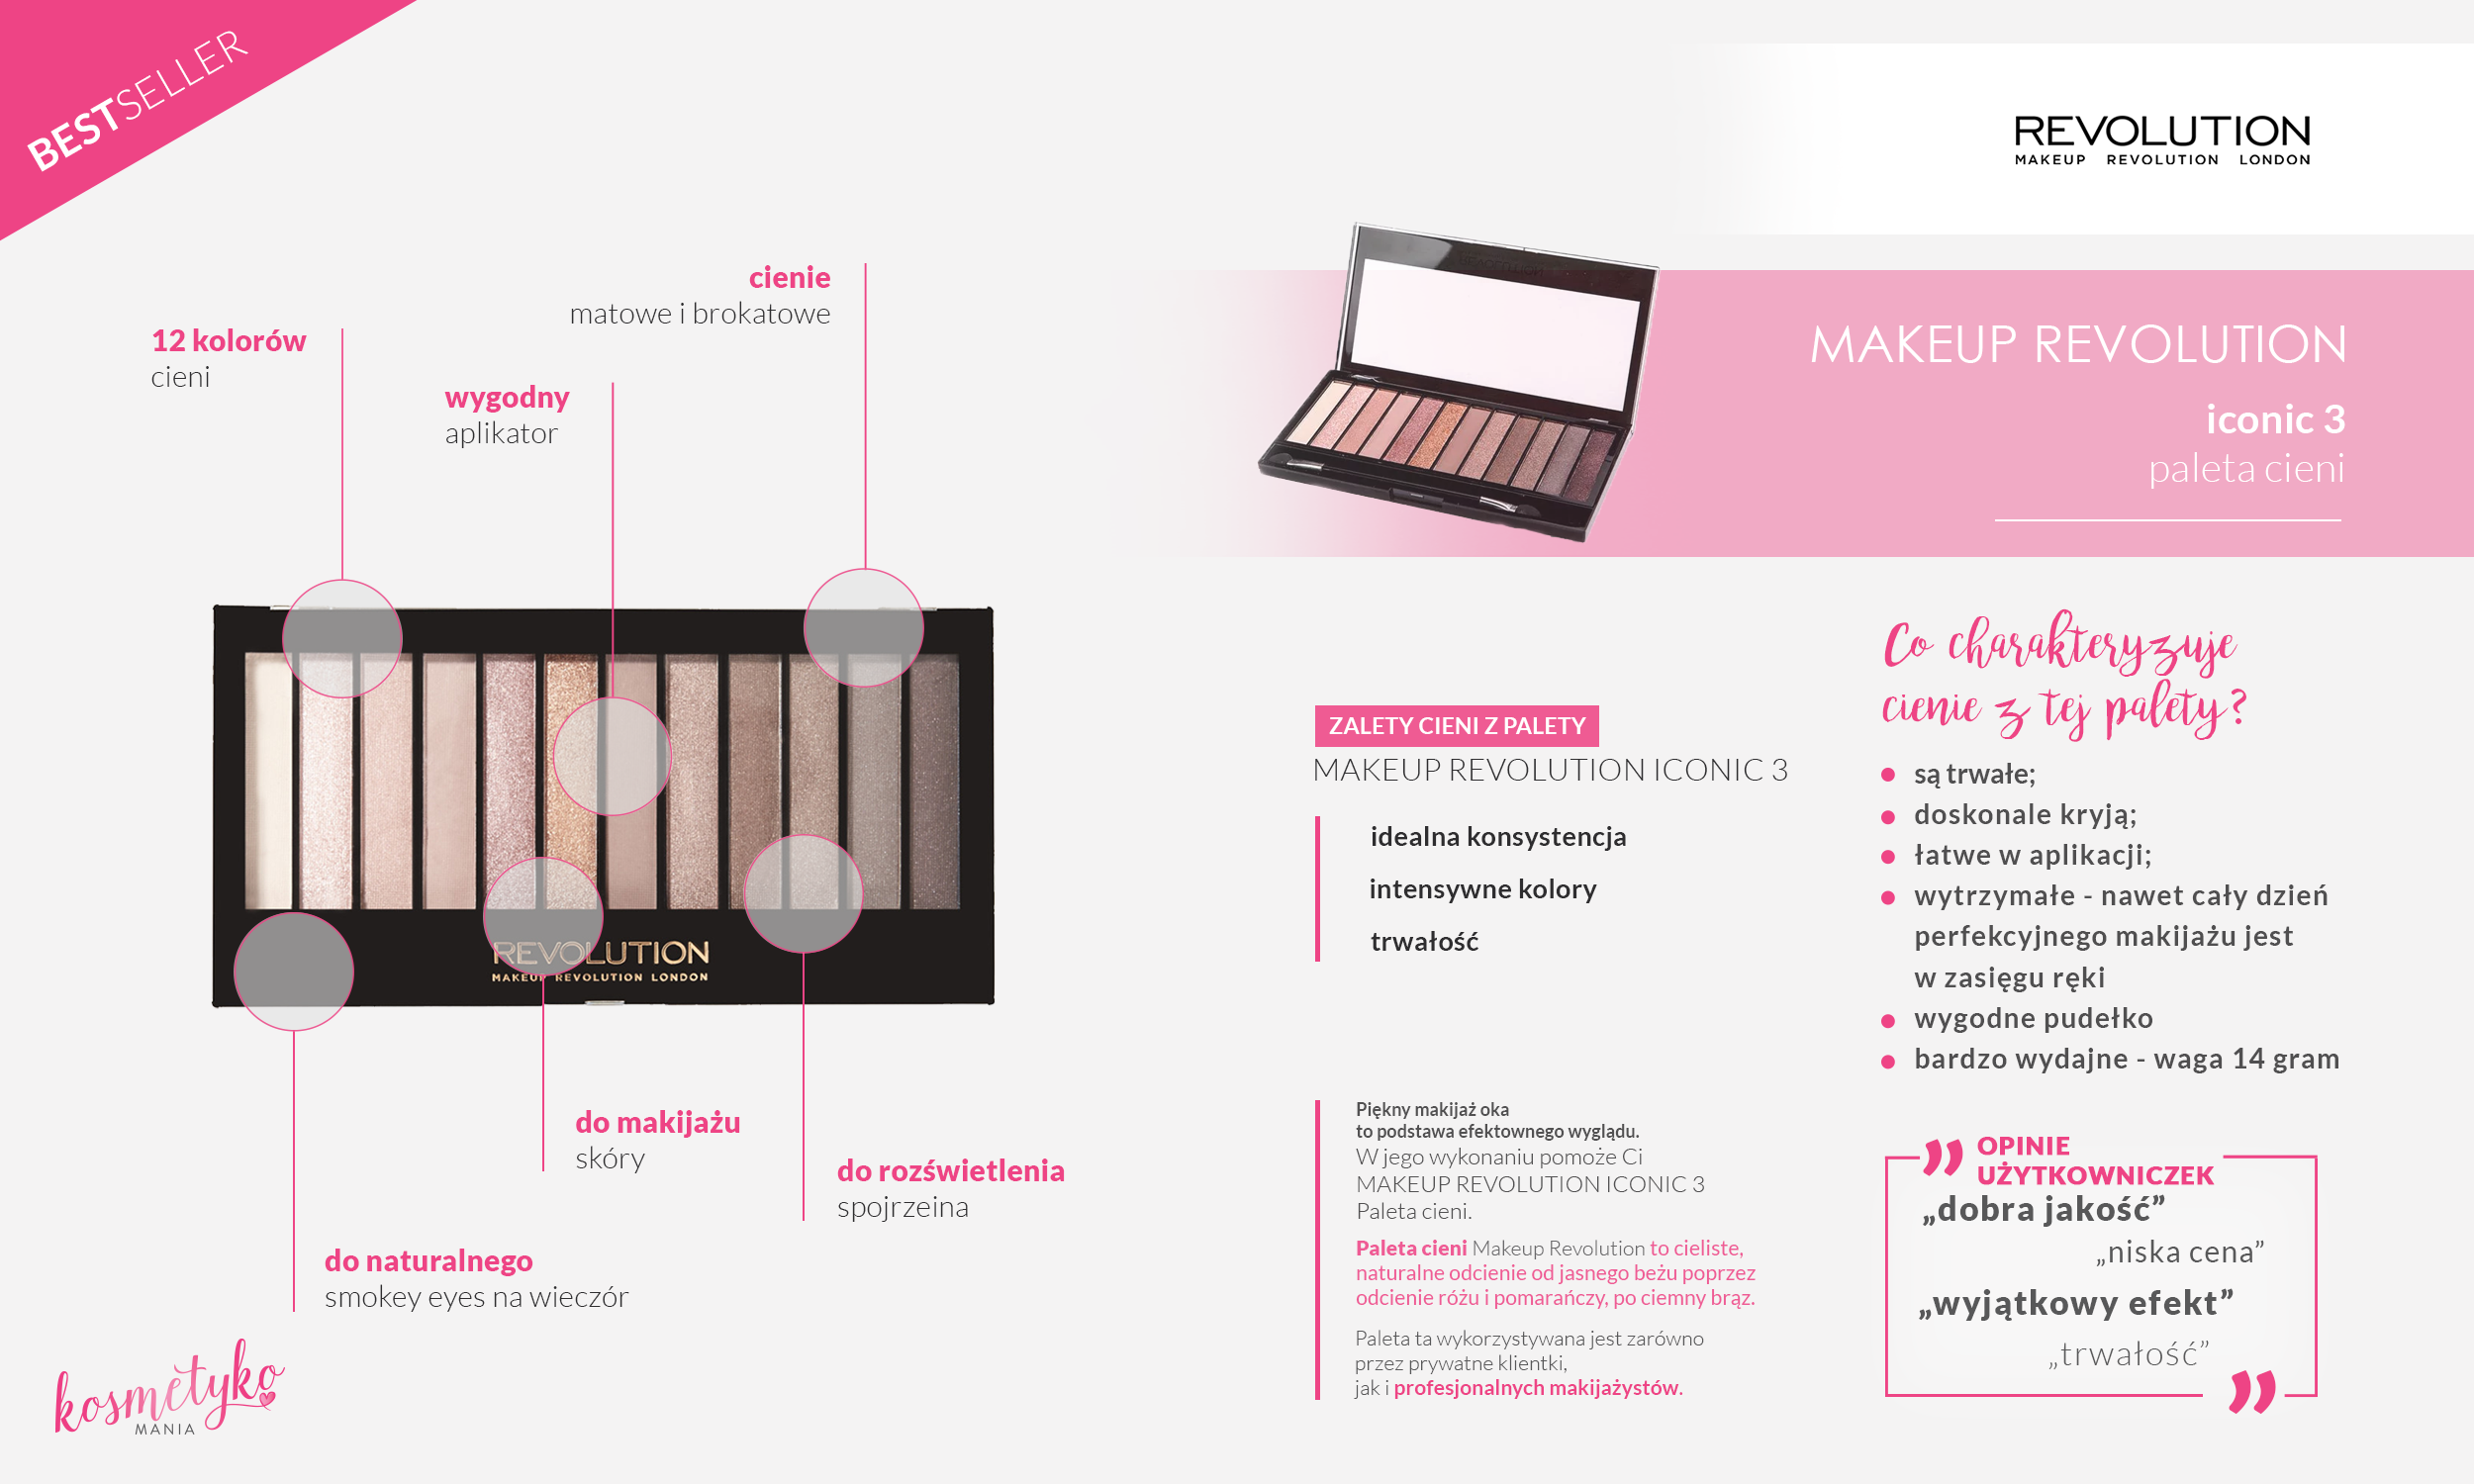 MAKEUP REVOLUTION ICONIC 3 Paleta cieni